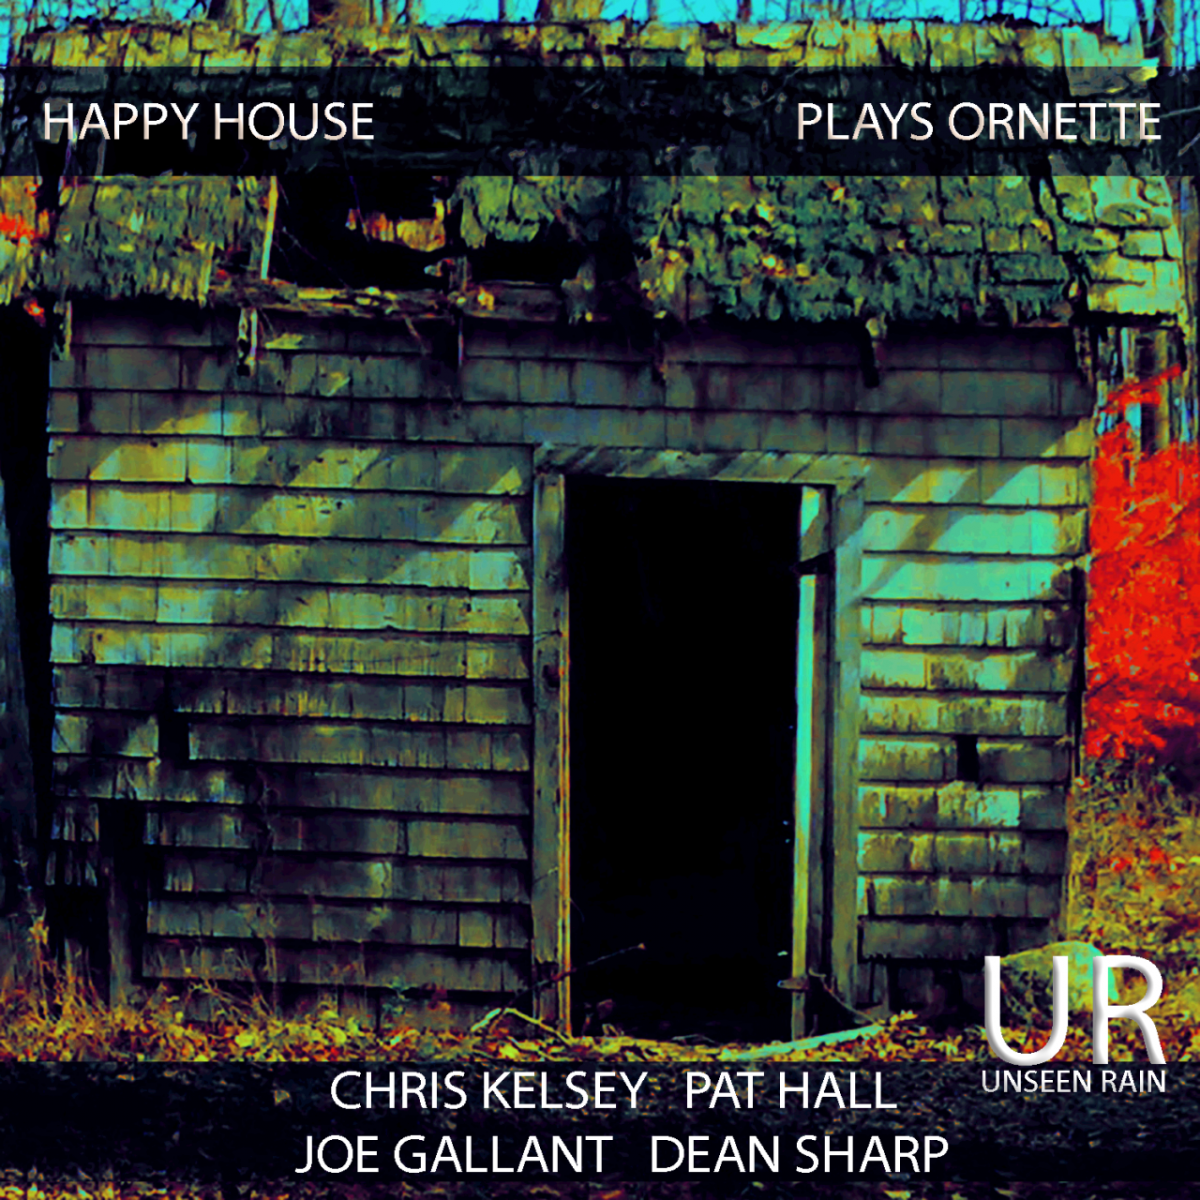 Happy House Band — Chris Kelsey, Pat Hall, Joe Gallant, Dean Sharp